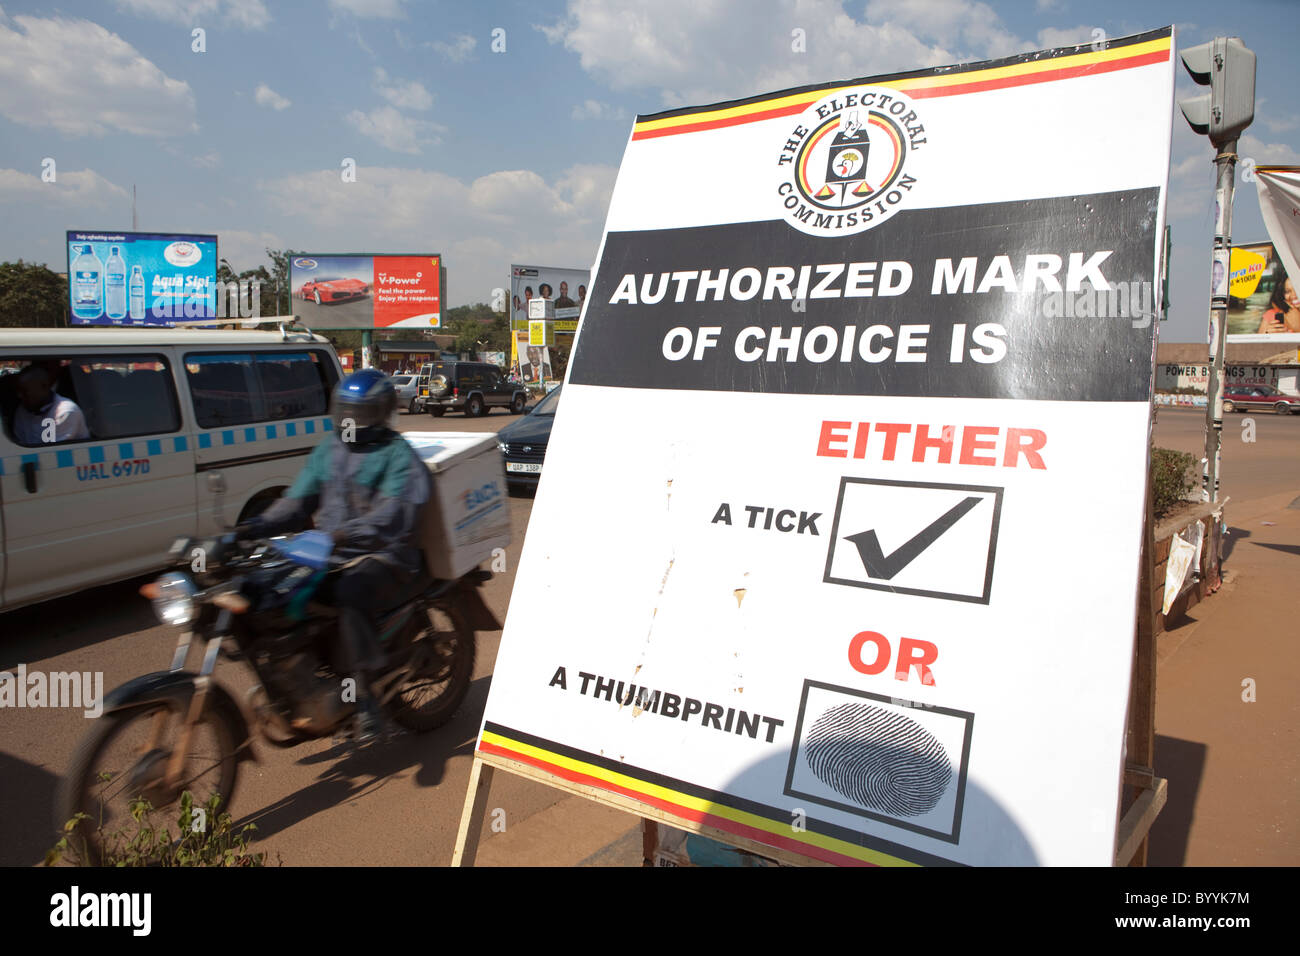 The streets of Kampala, Uganda's capital city, are dotted with campaign messages ahead of the presidential election - Stock Image